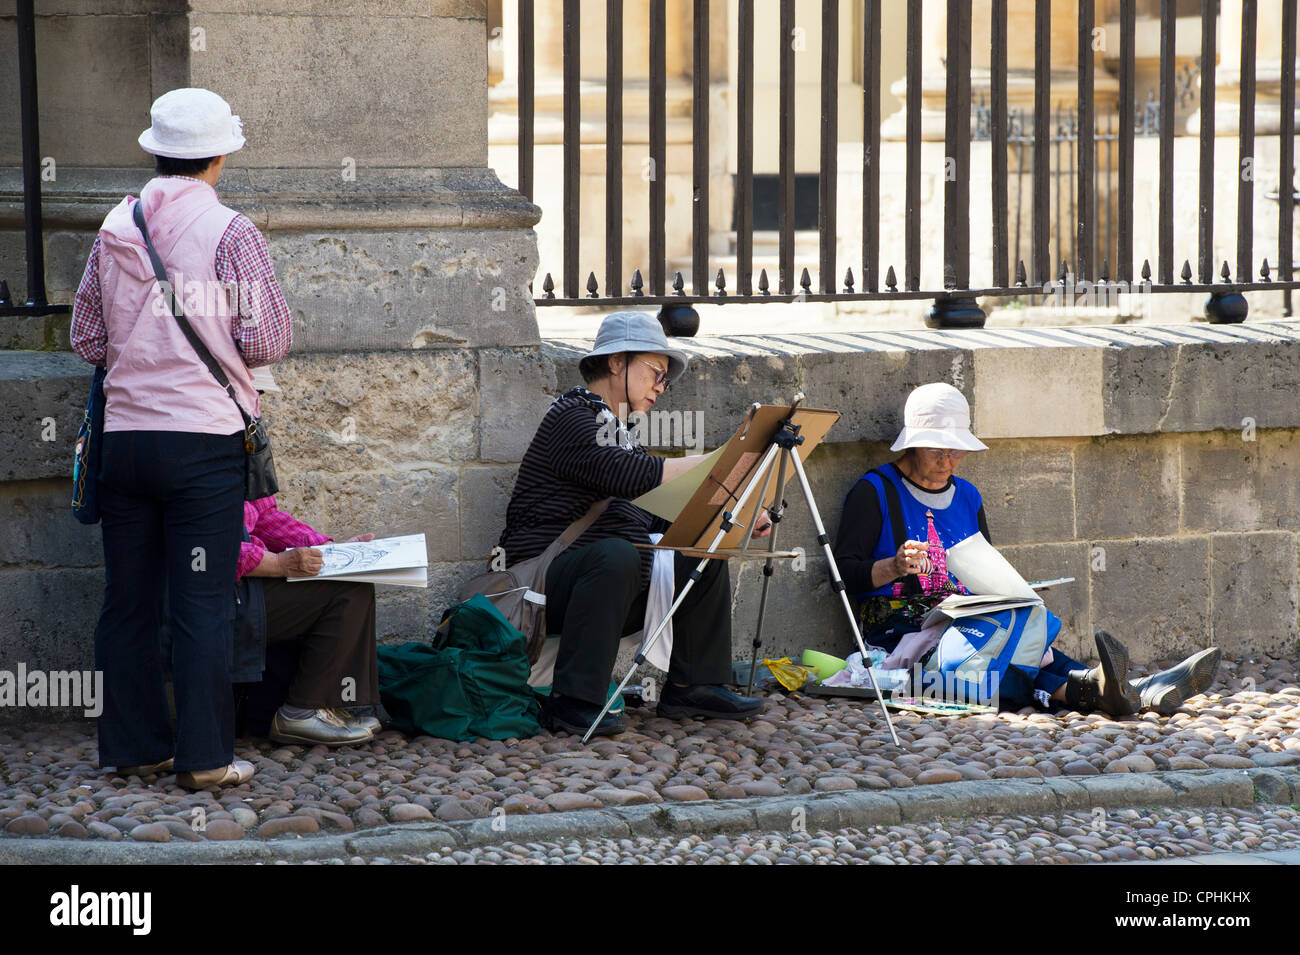 Japanese tourists / artists painting and drawing the Hertford Bridge / bridge of sighs. Oxford, England - Stock Image